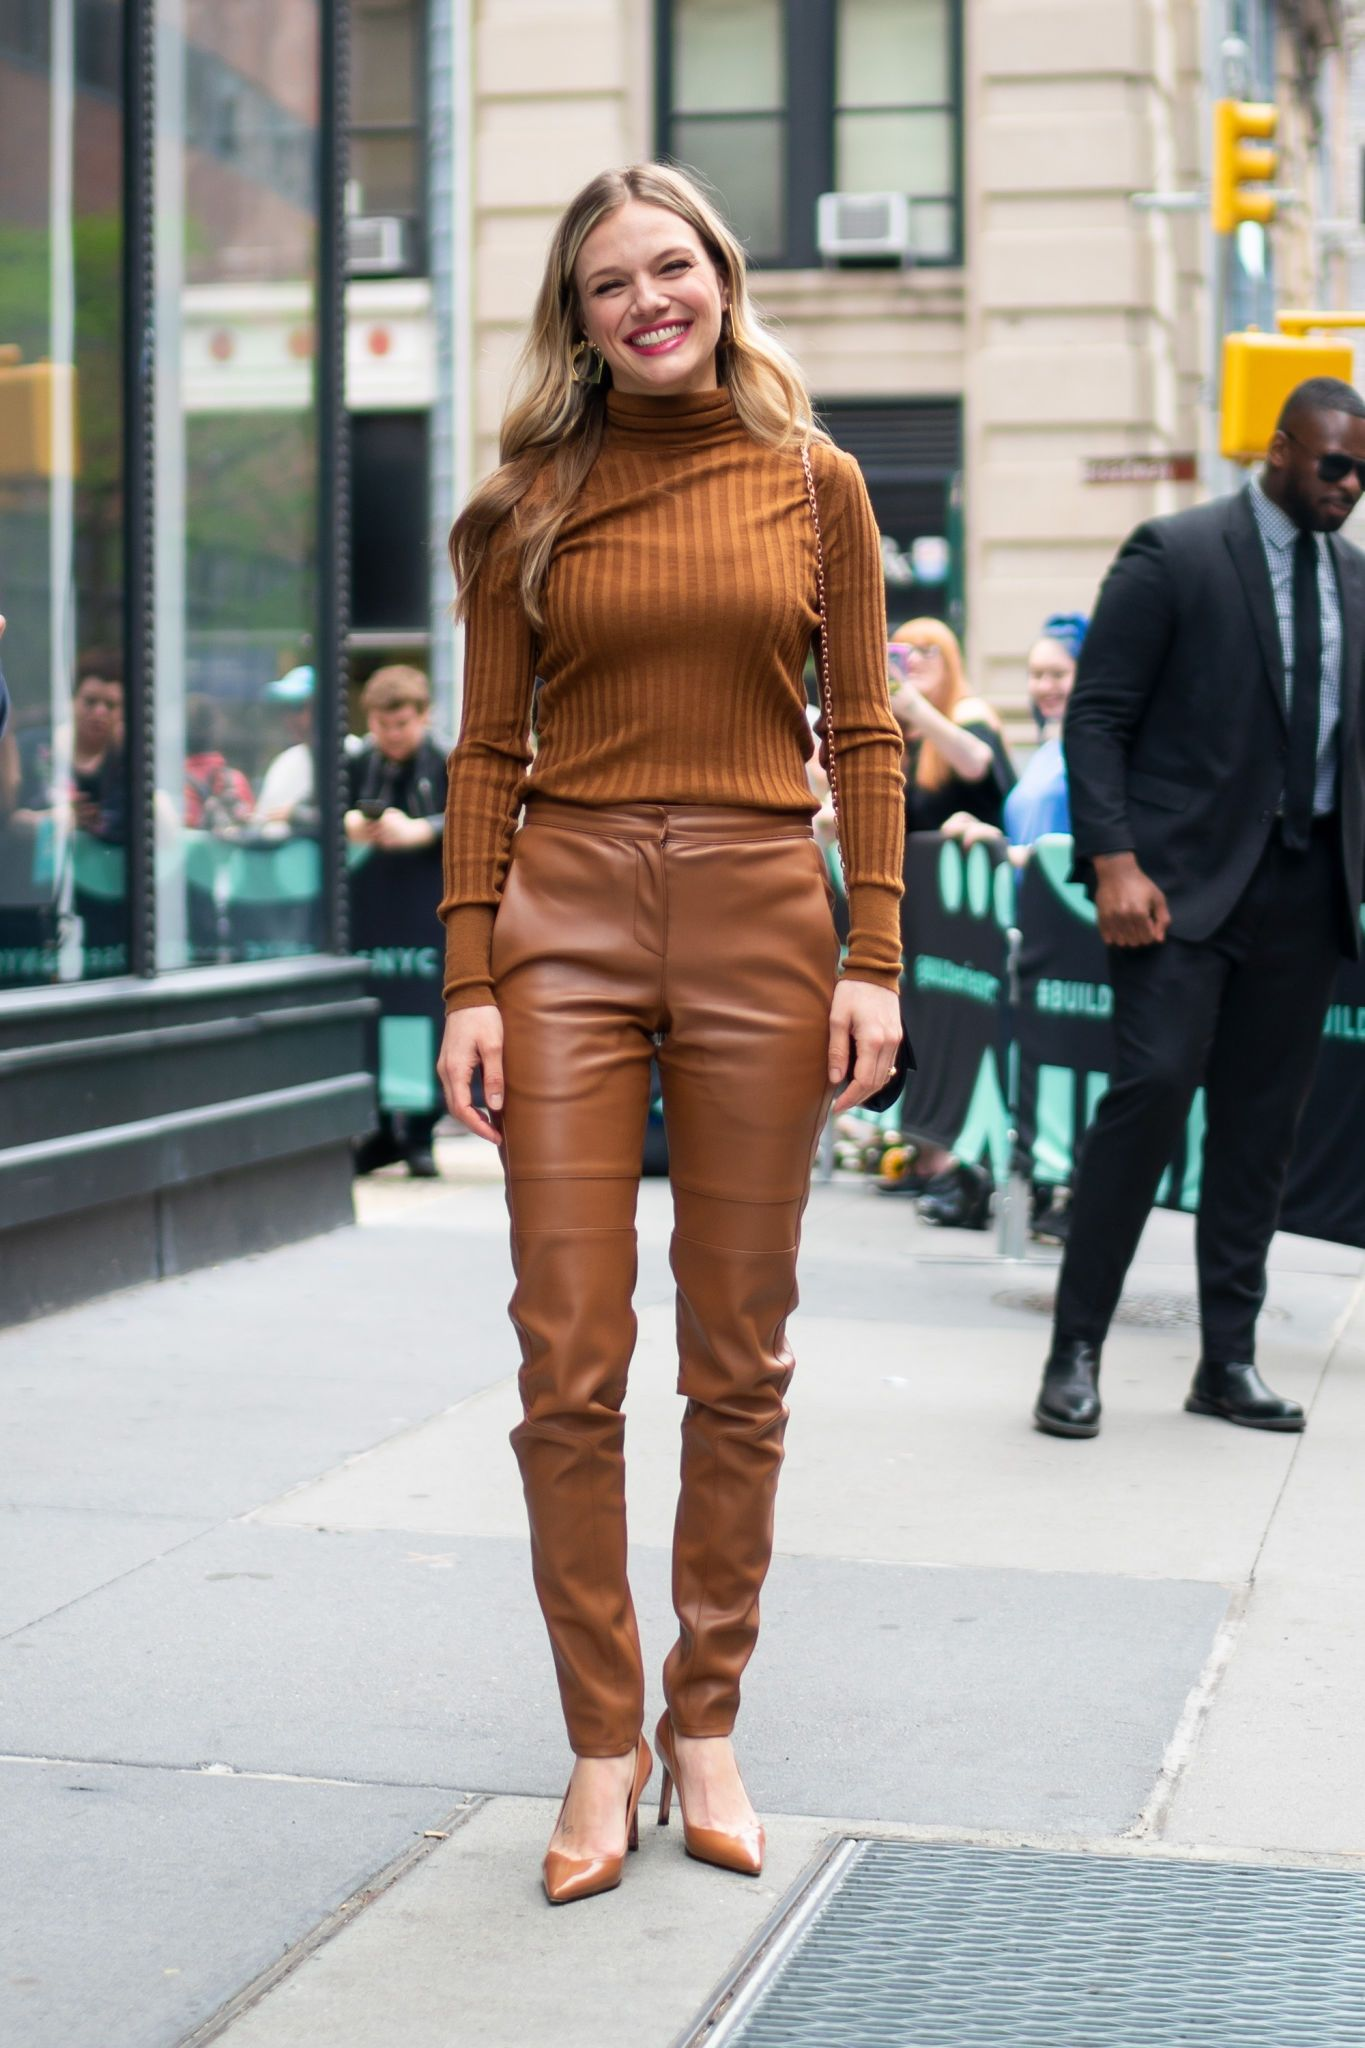 Tracy Spiridakos at AOL Build for Chicago PD in NY - 4/23/19